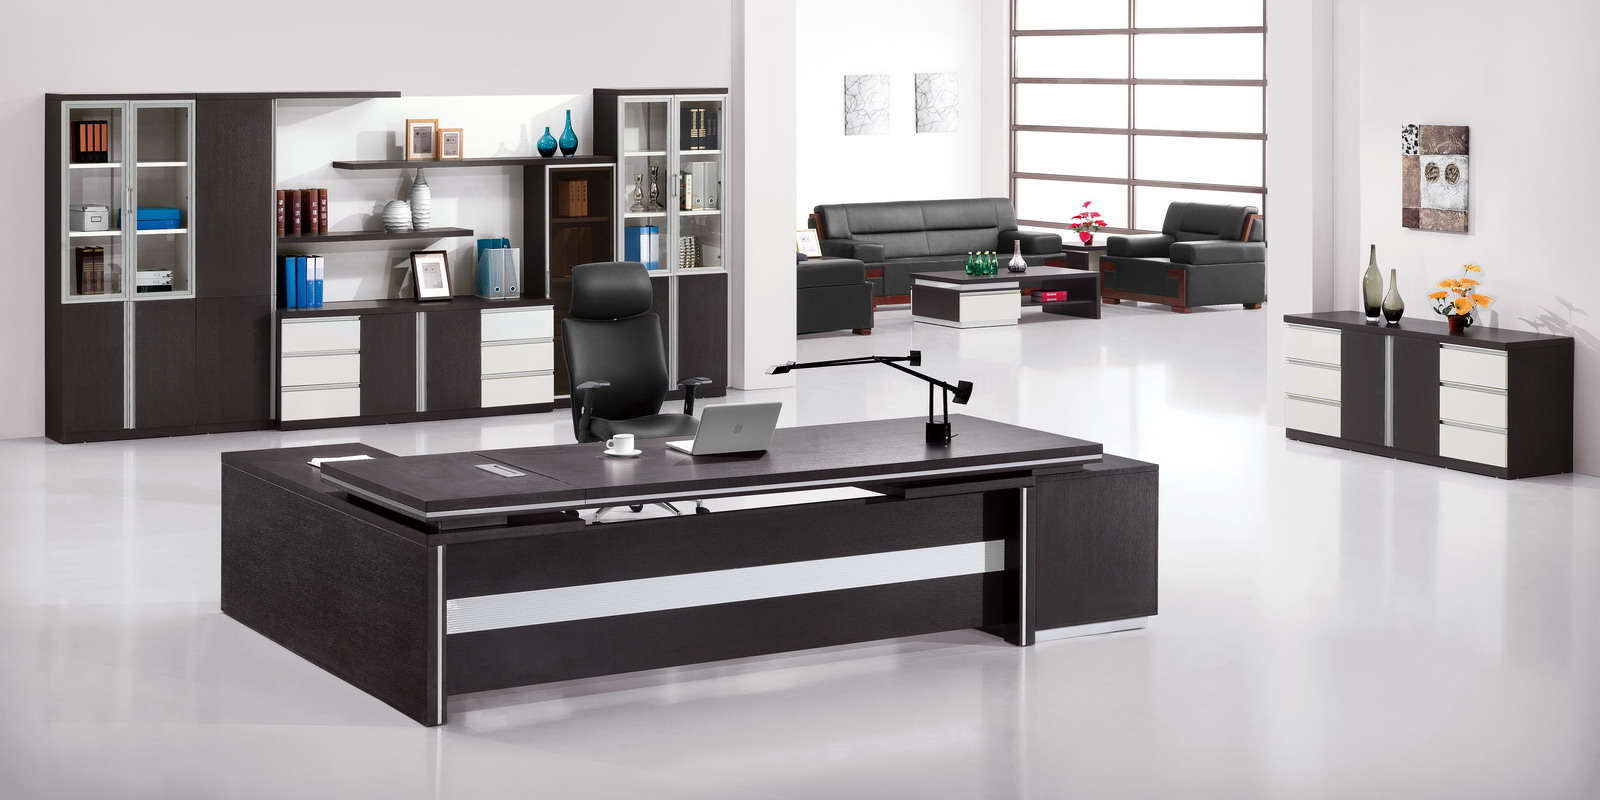 Office Furniture Sale Dubai Special Offers On Office Furniture